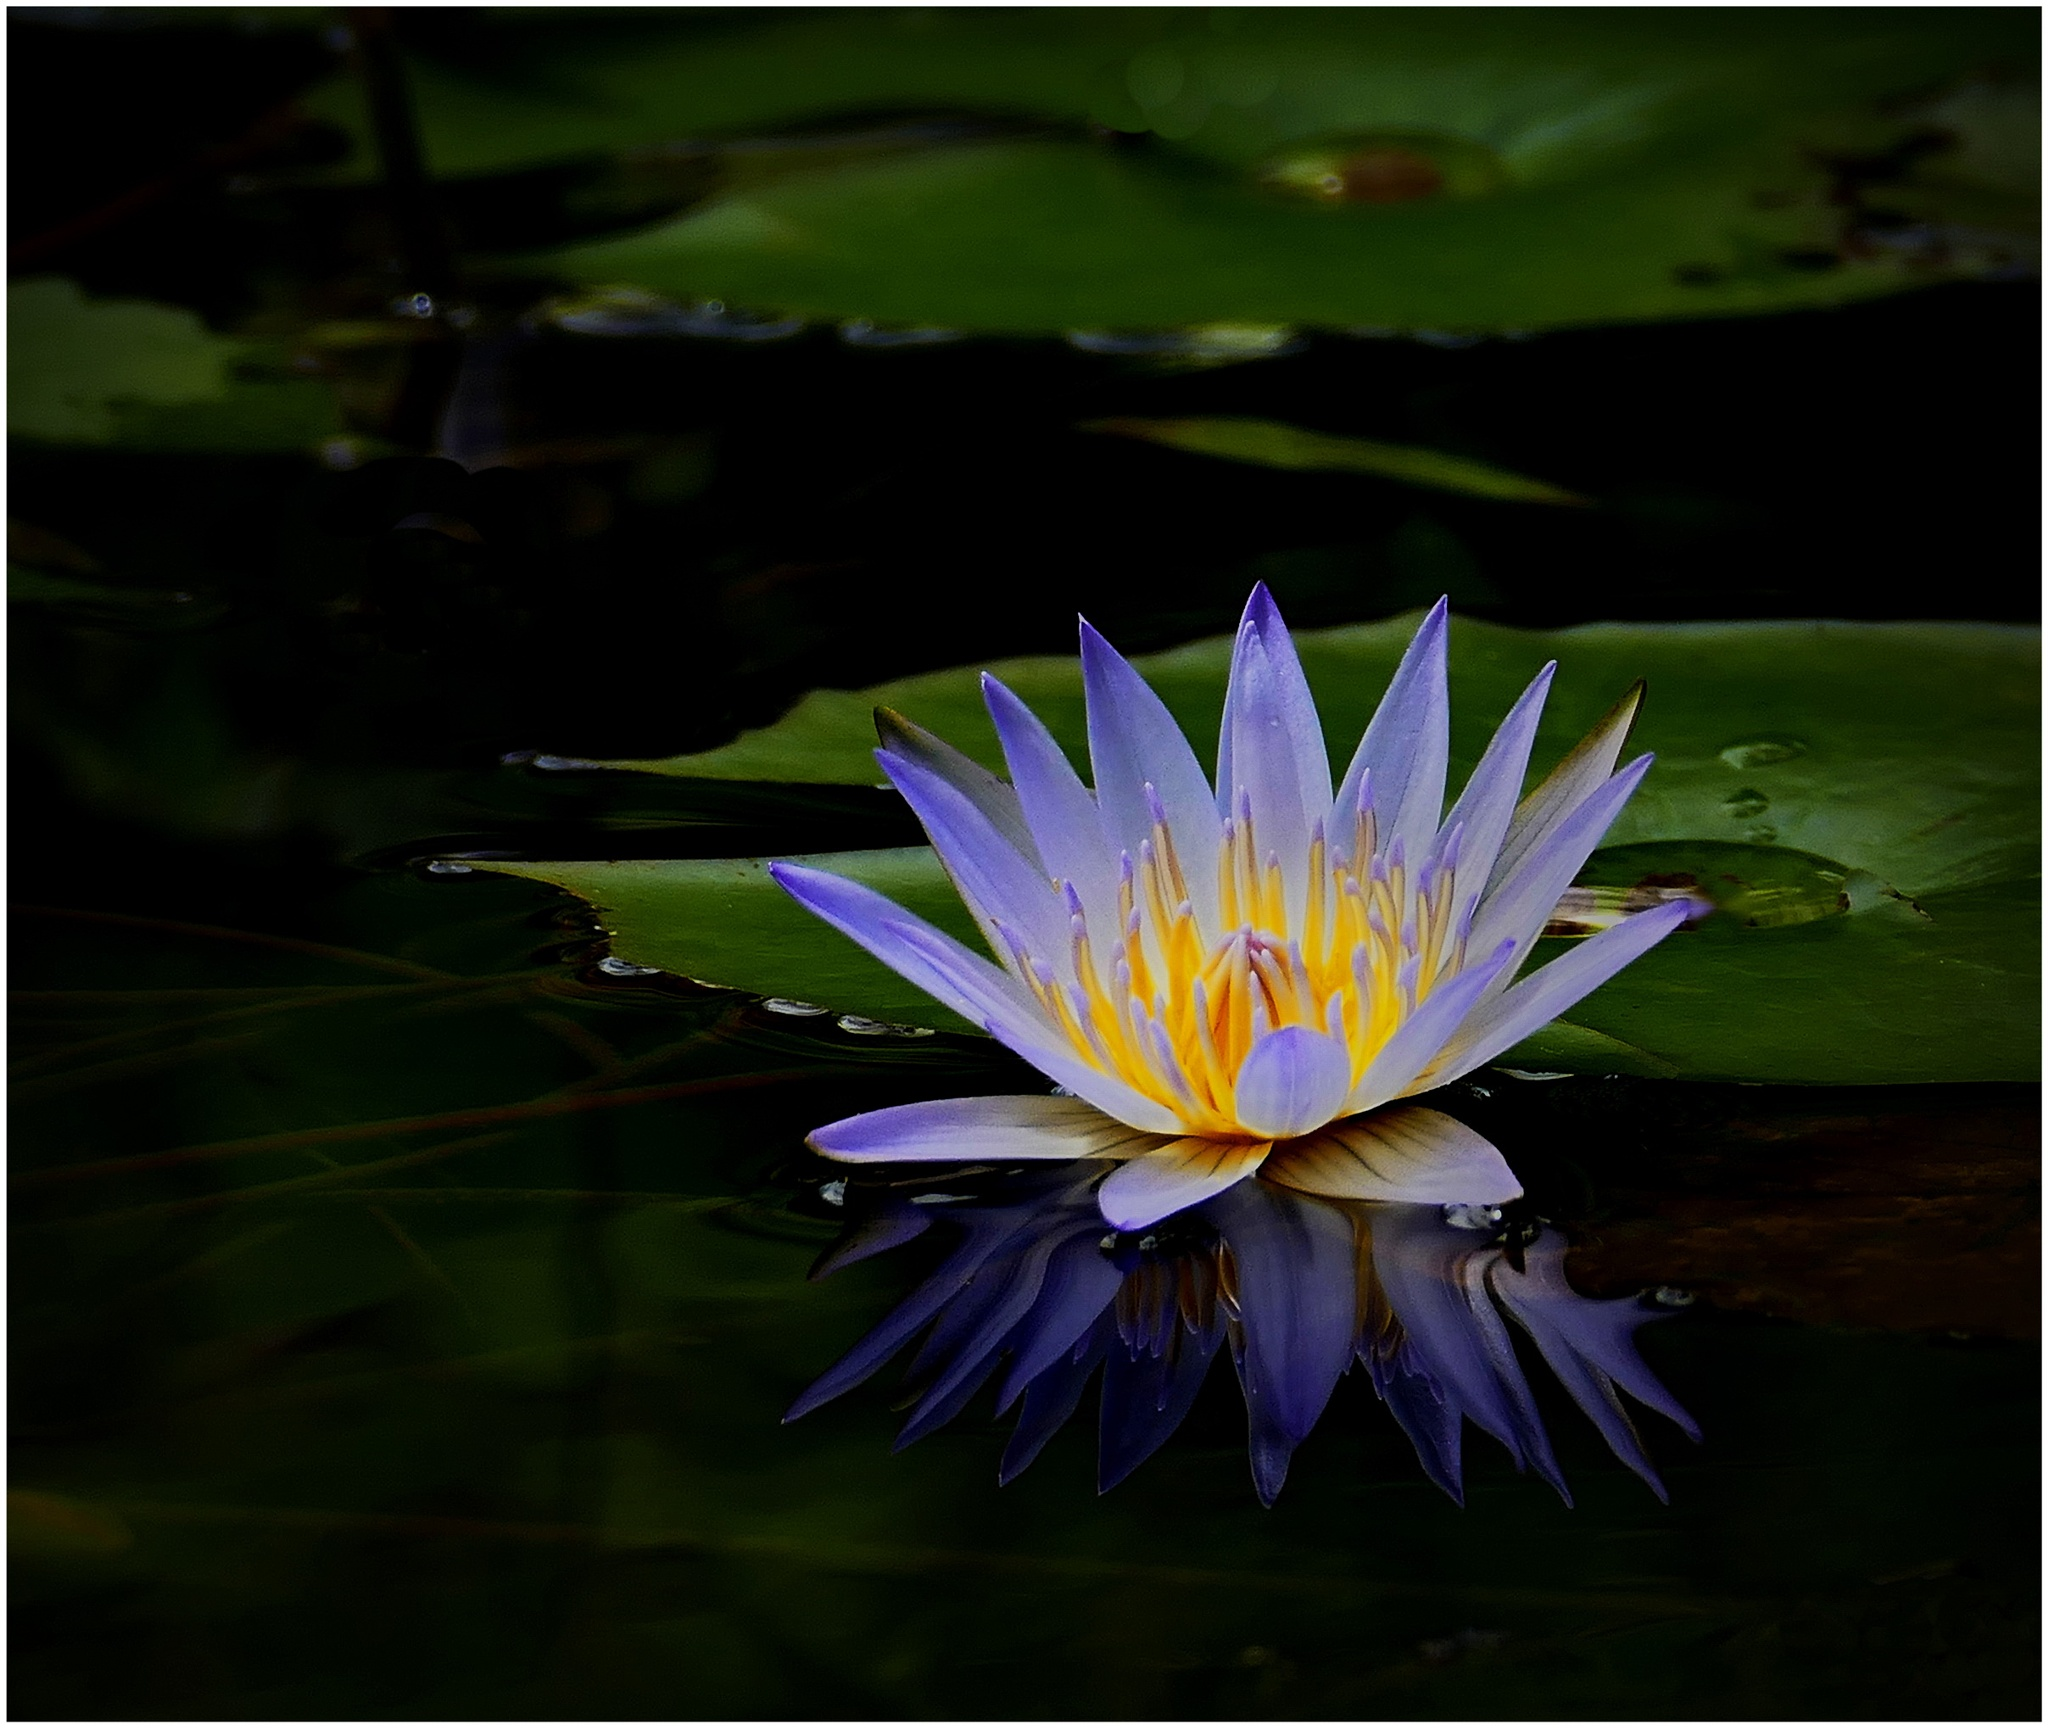 waterlily by Looi Chang